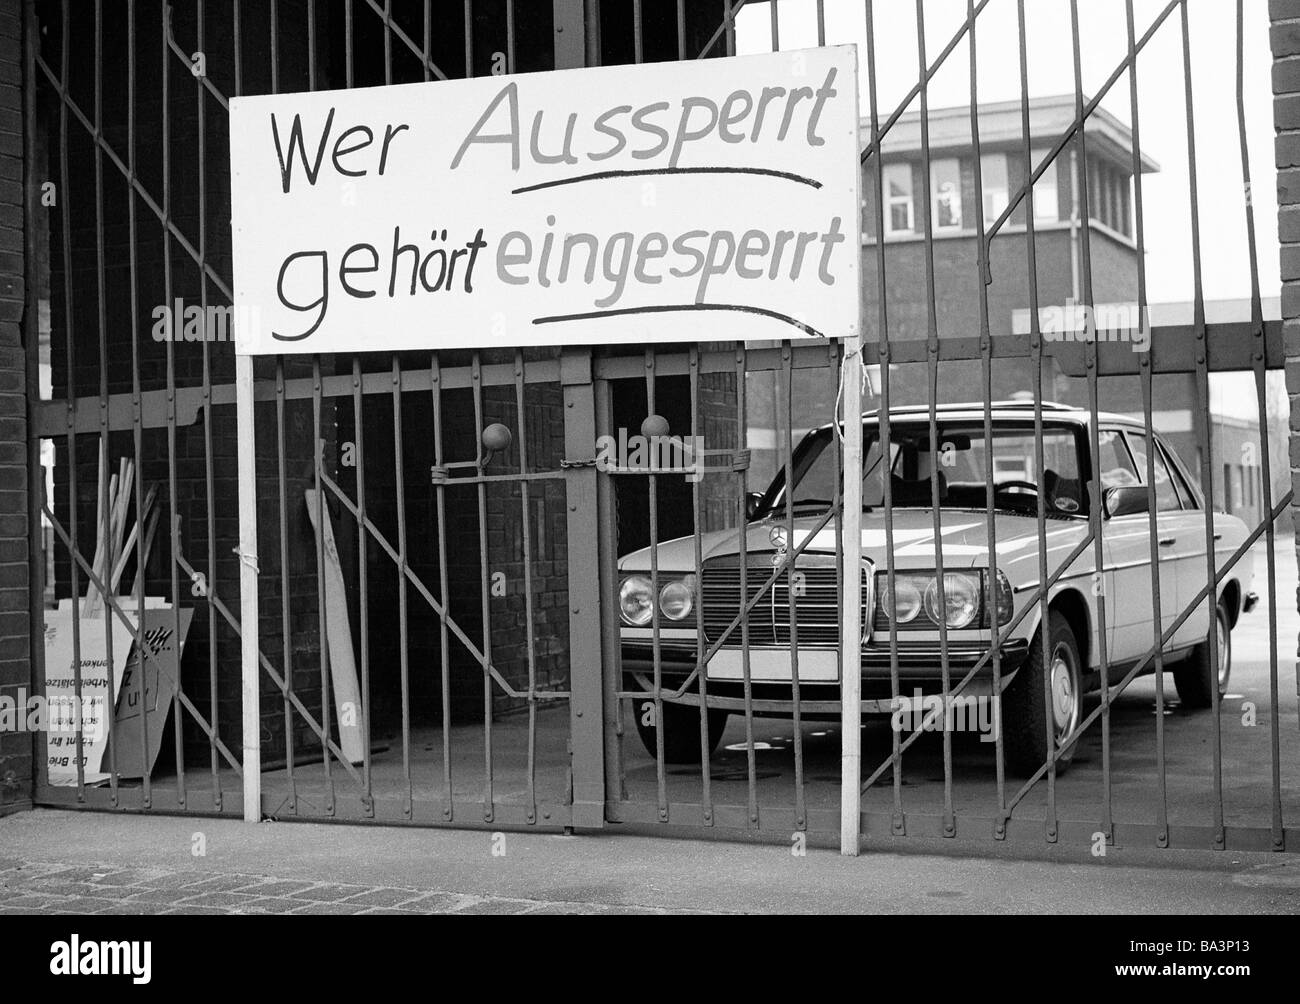 Seventies, black and white photo, economy, steel industry in the Ruhr area, strike on Thyssen in 1978, strike call, - Stock Image